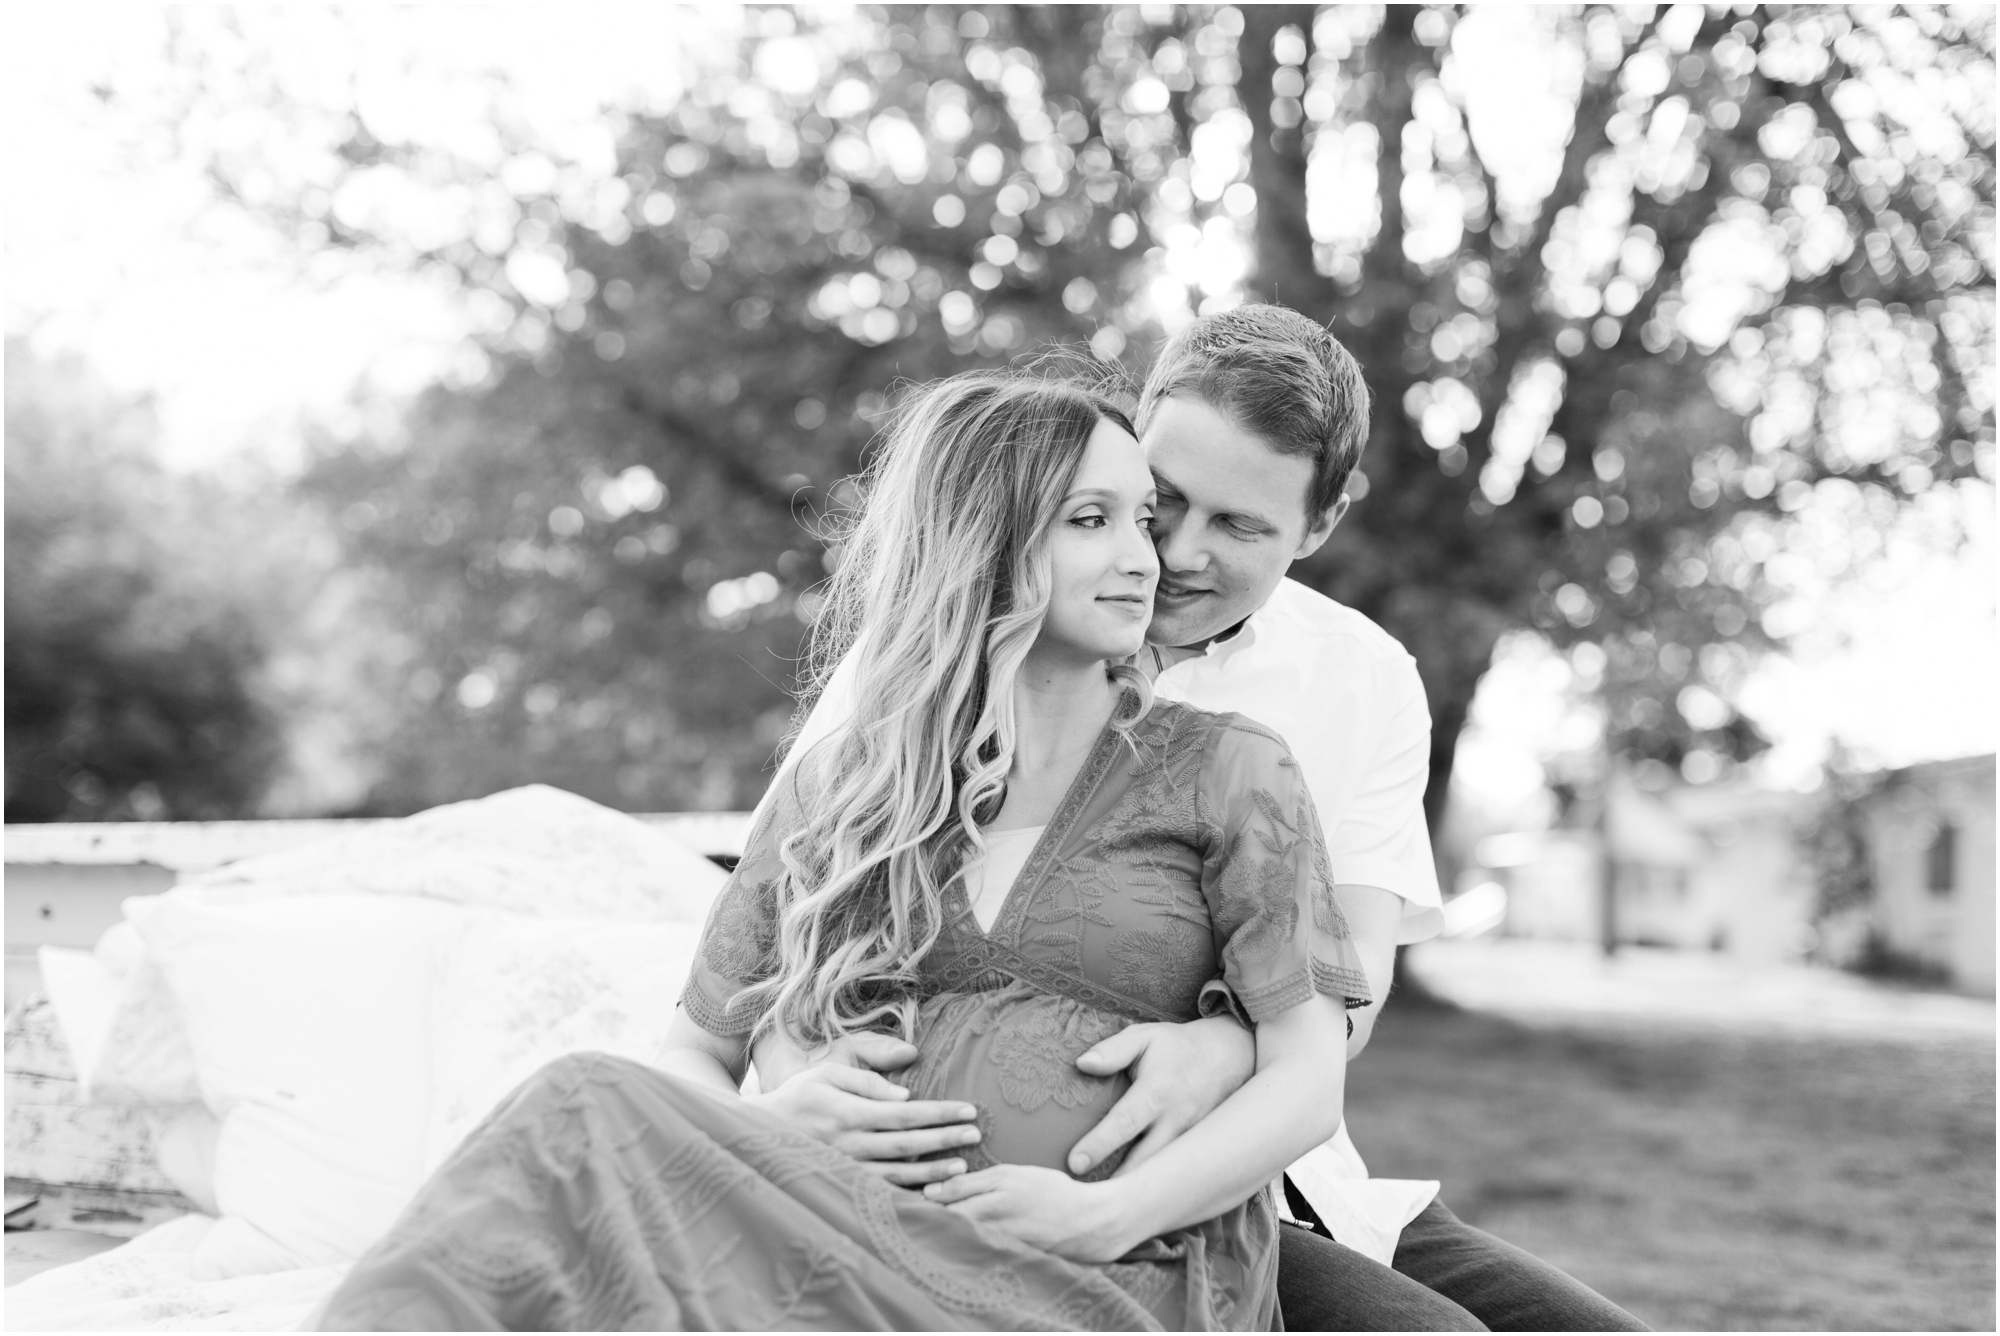 Wild Hearts Farm maternity shoot in Tacoma. Photos by Briana Calderon Photography based in the greater Seattle Tacoma Area._1206.jpg